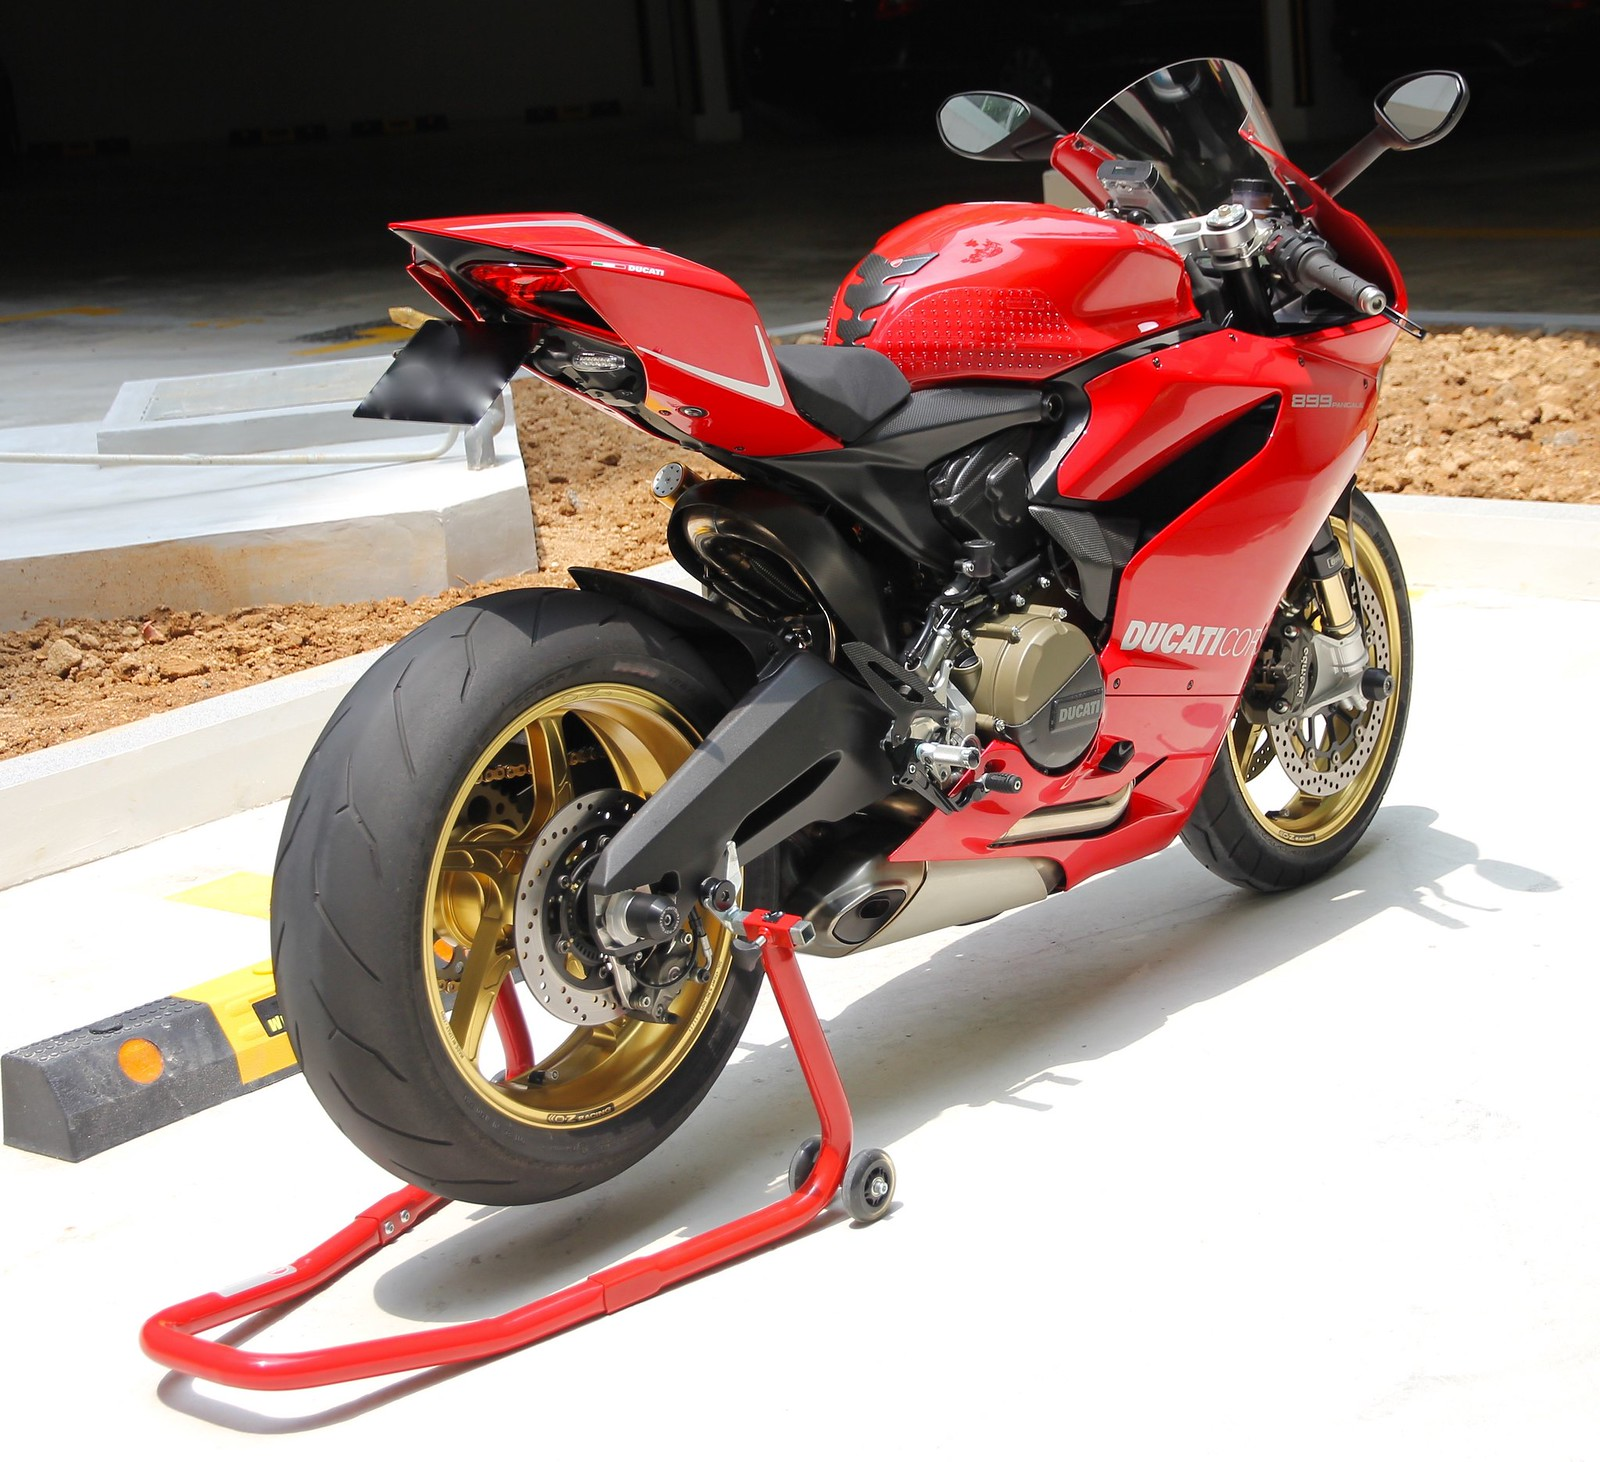 Ducati Performance Dust Cover